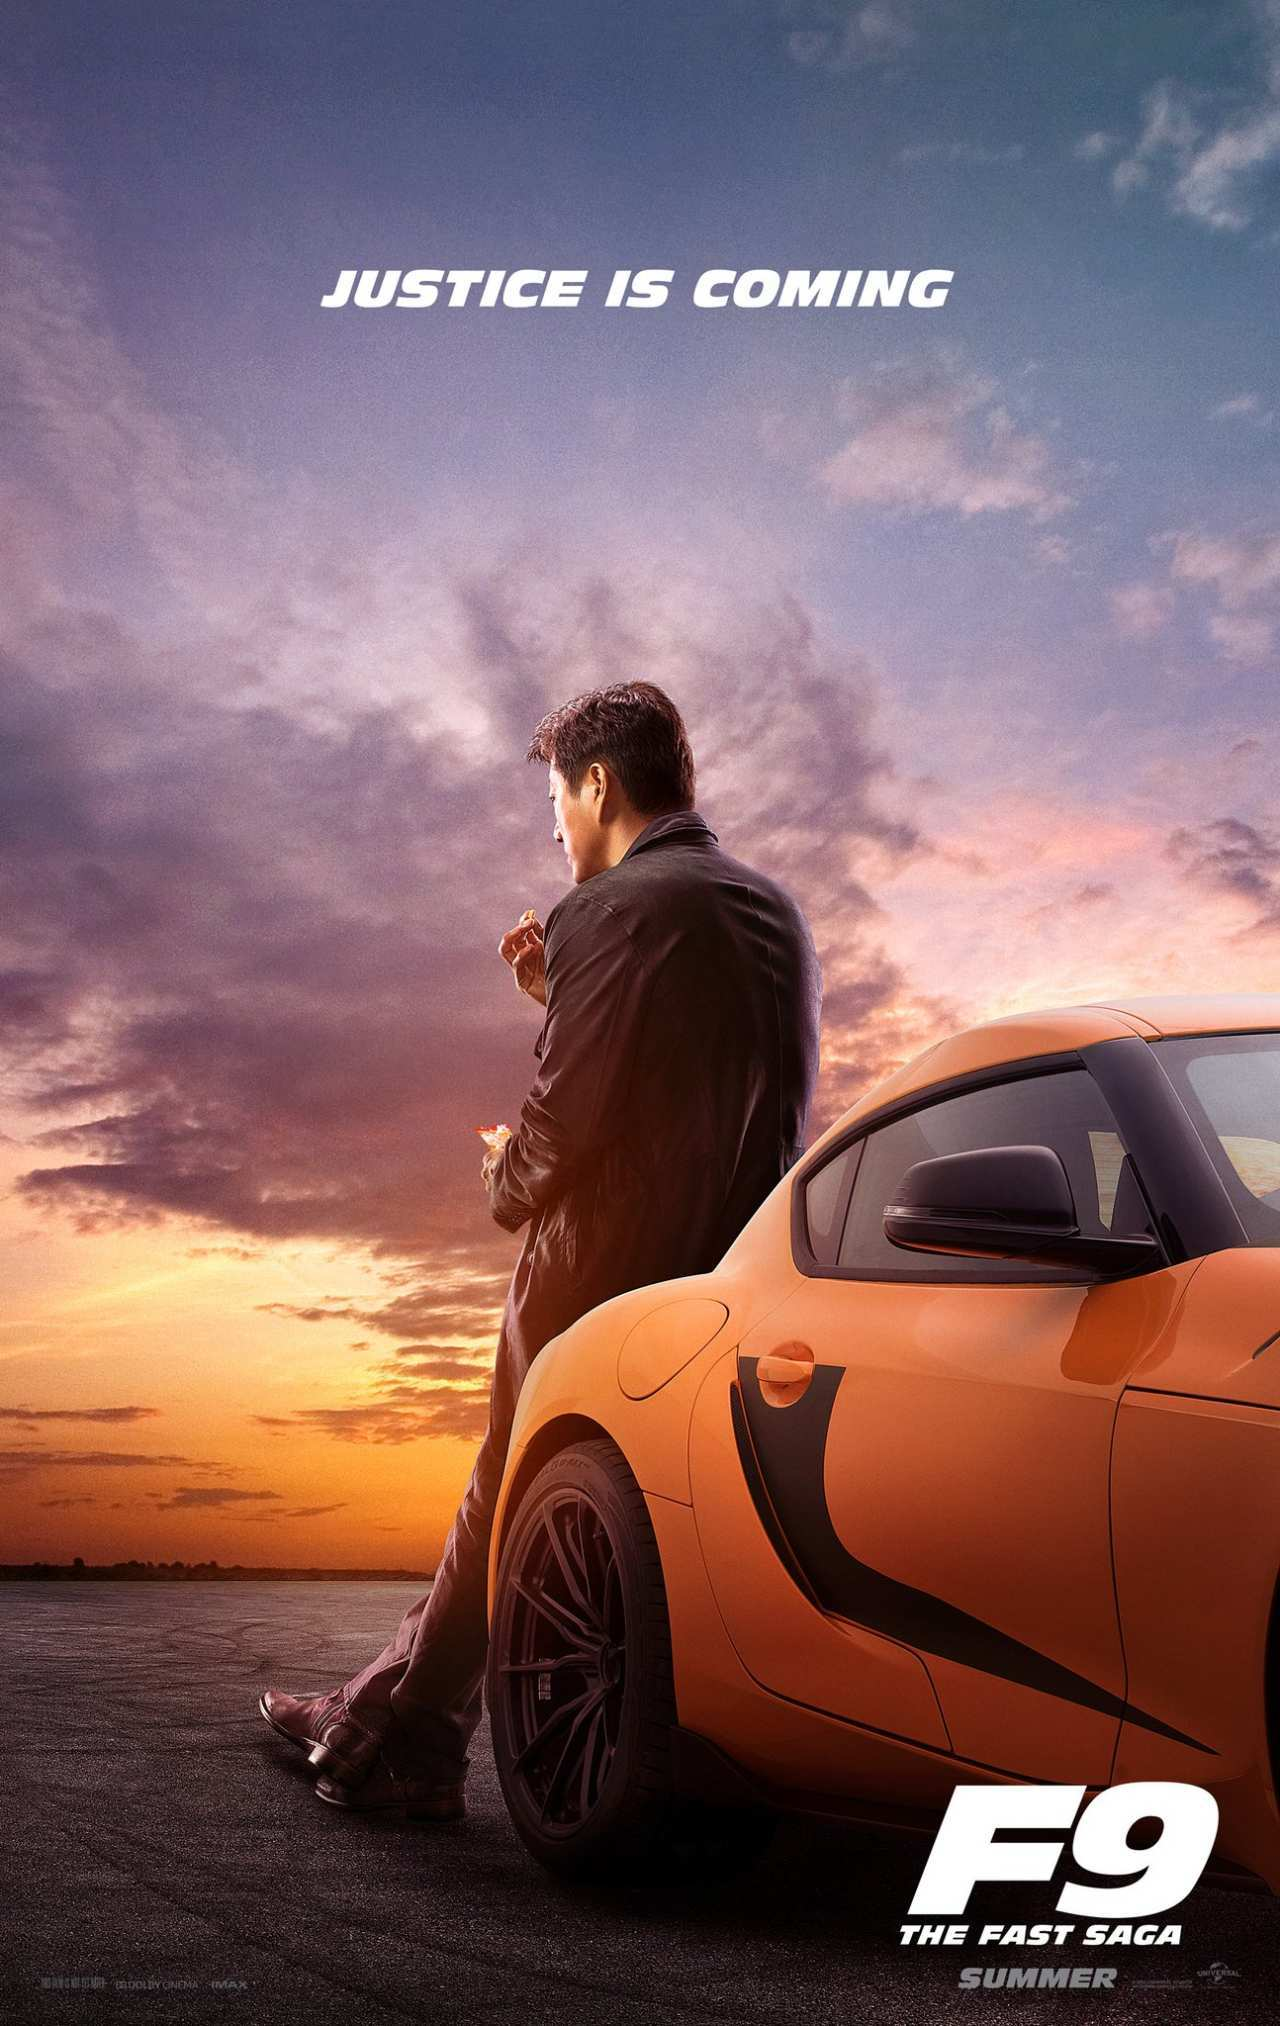 Fast and Furious 9 Trailer & Poster 9